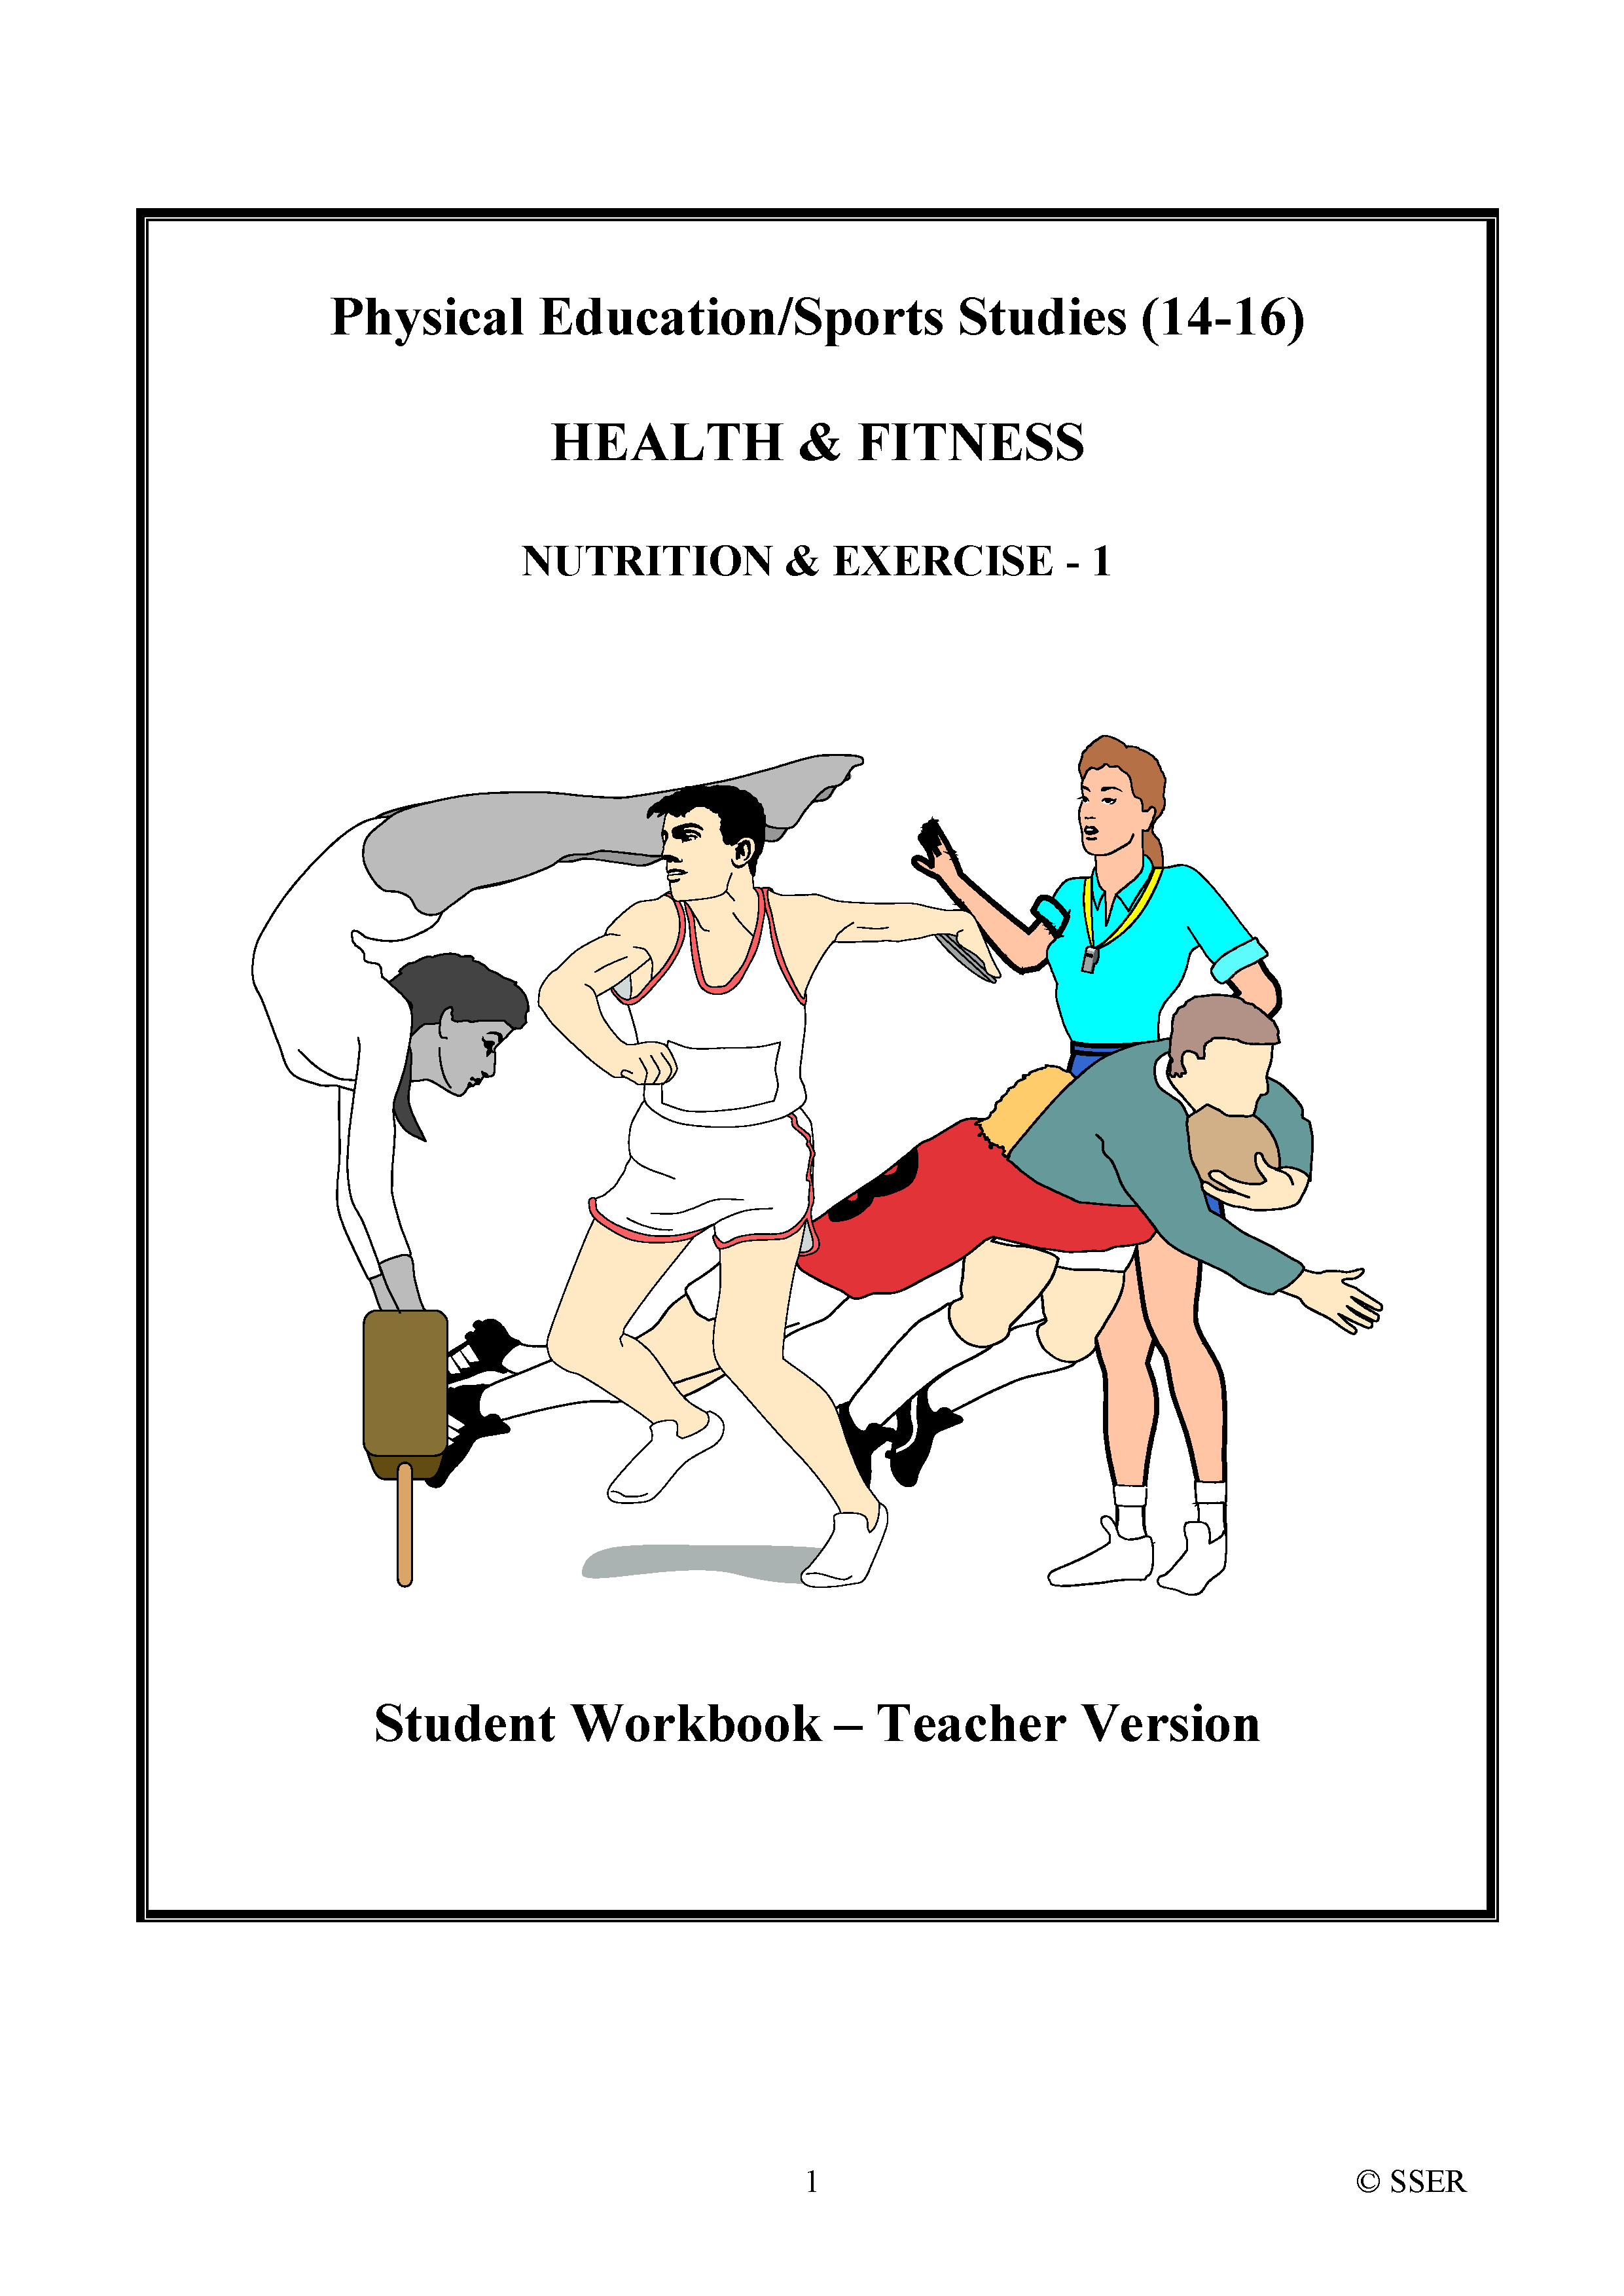 PE702ST - Nutrition & Exercise - 1 (Balanced Diet & Energy Needs) WS